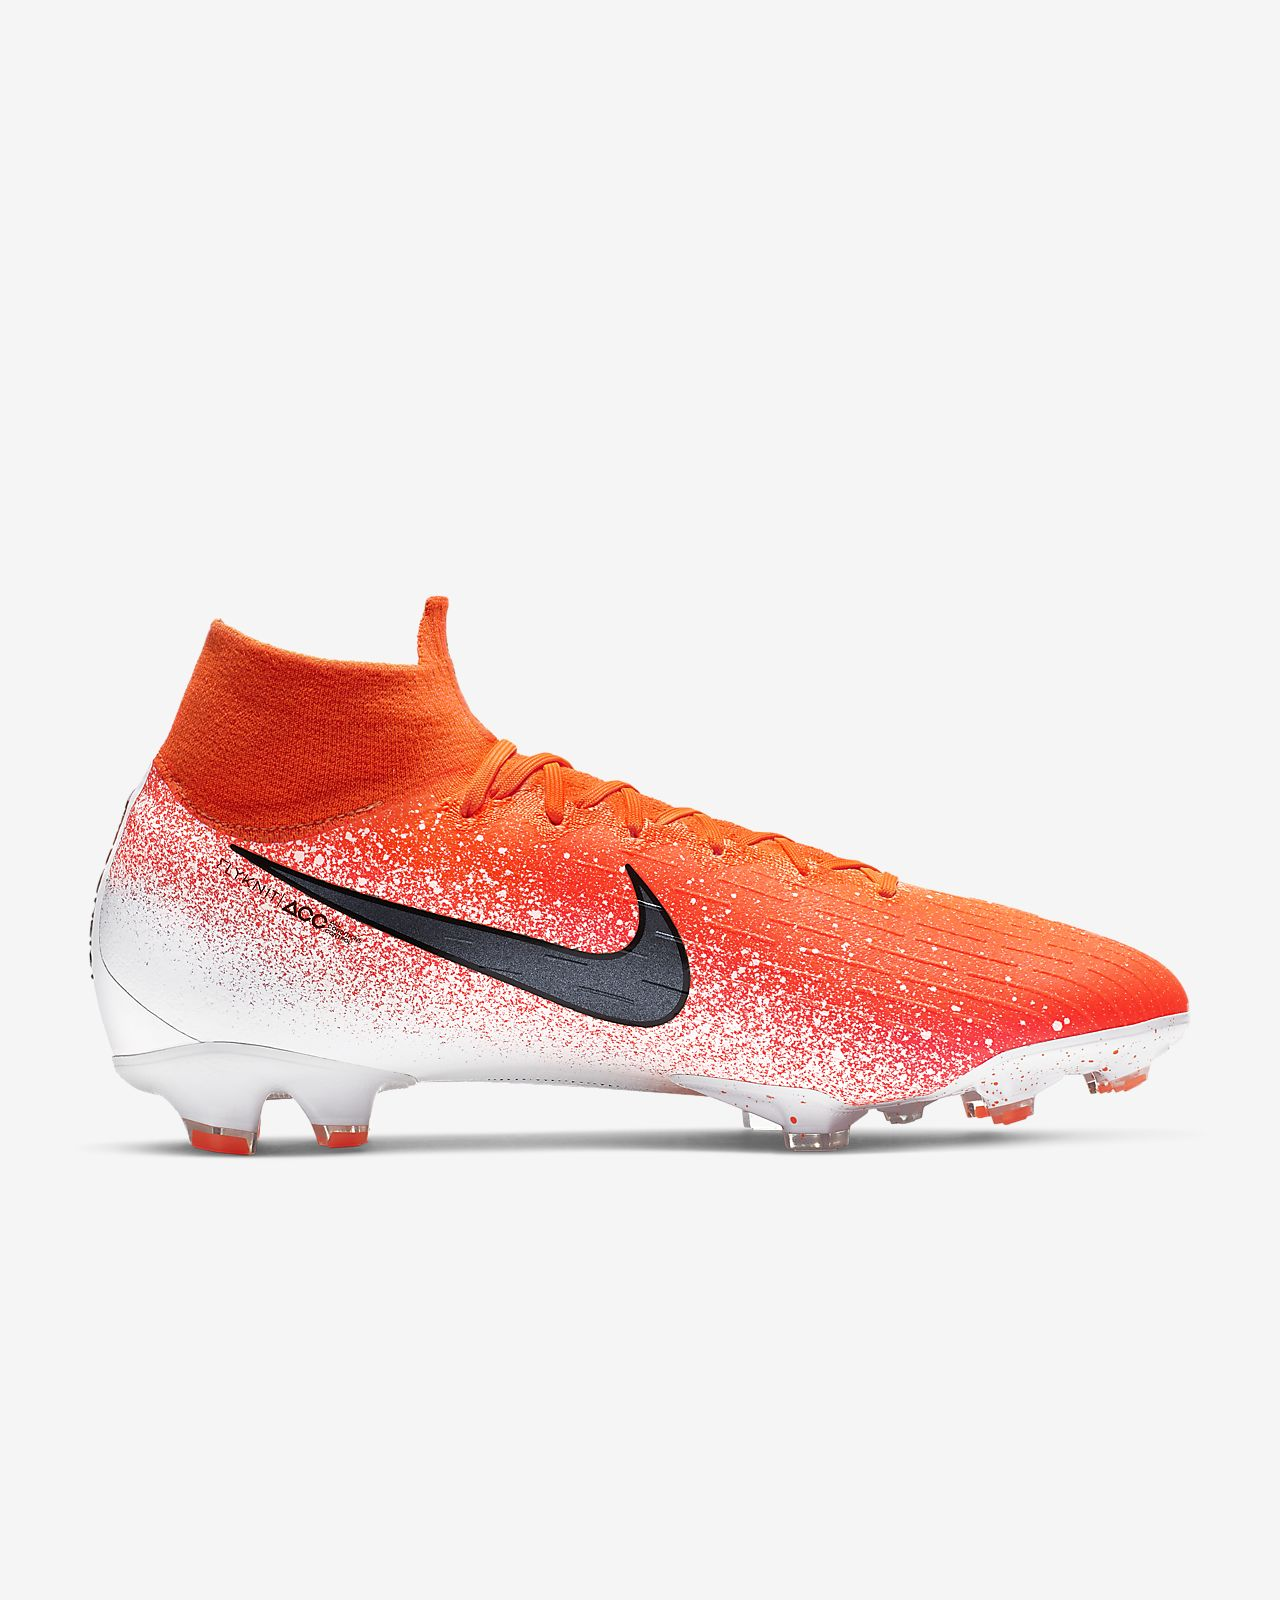 1cbca3043d3f Nike Superfly 6 Elite FG Firm-Ground Soccer Cleat. Nike.com